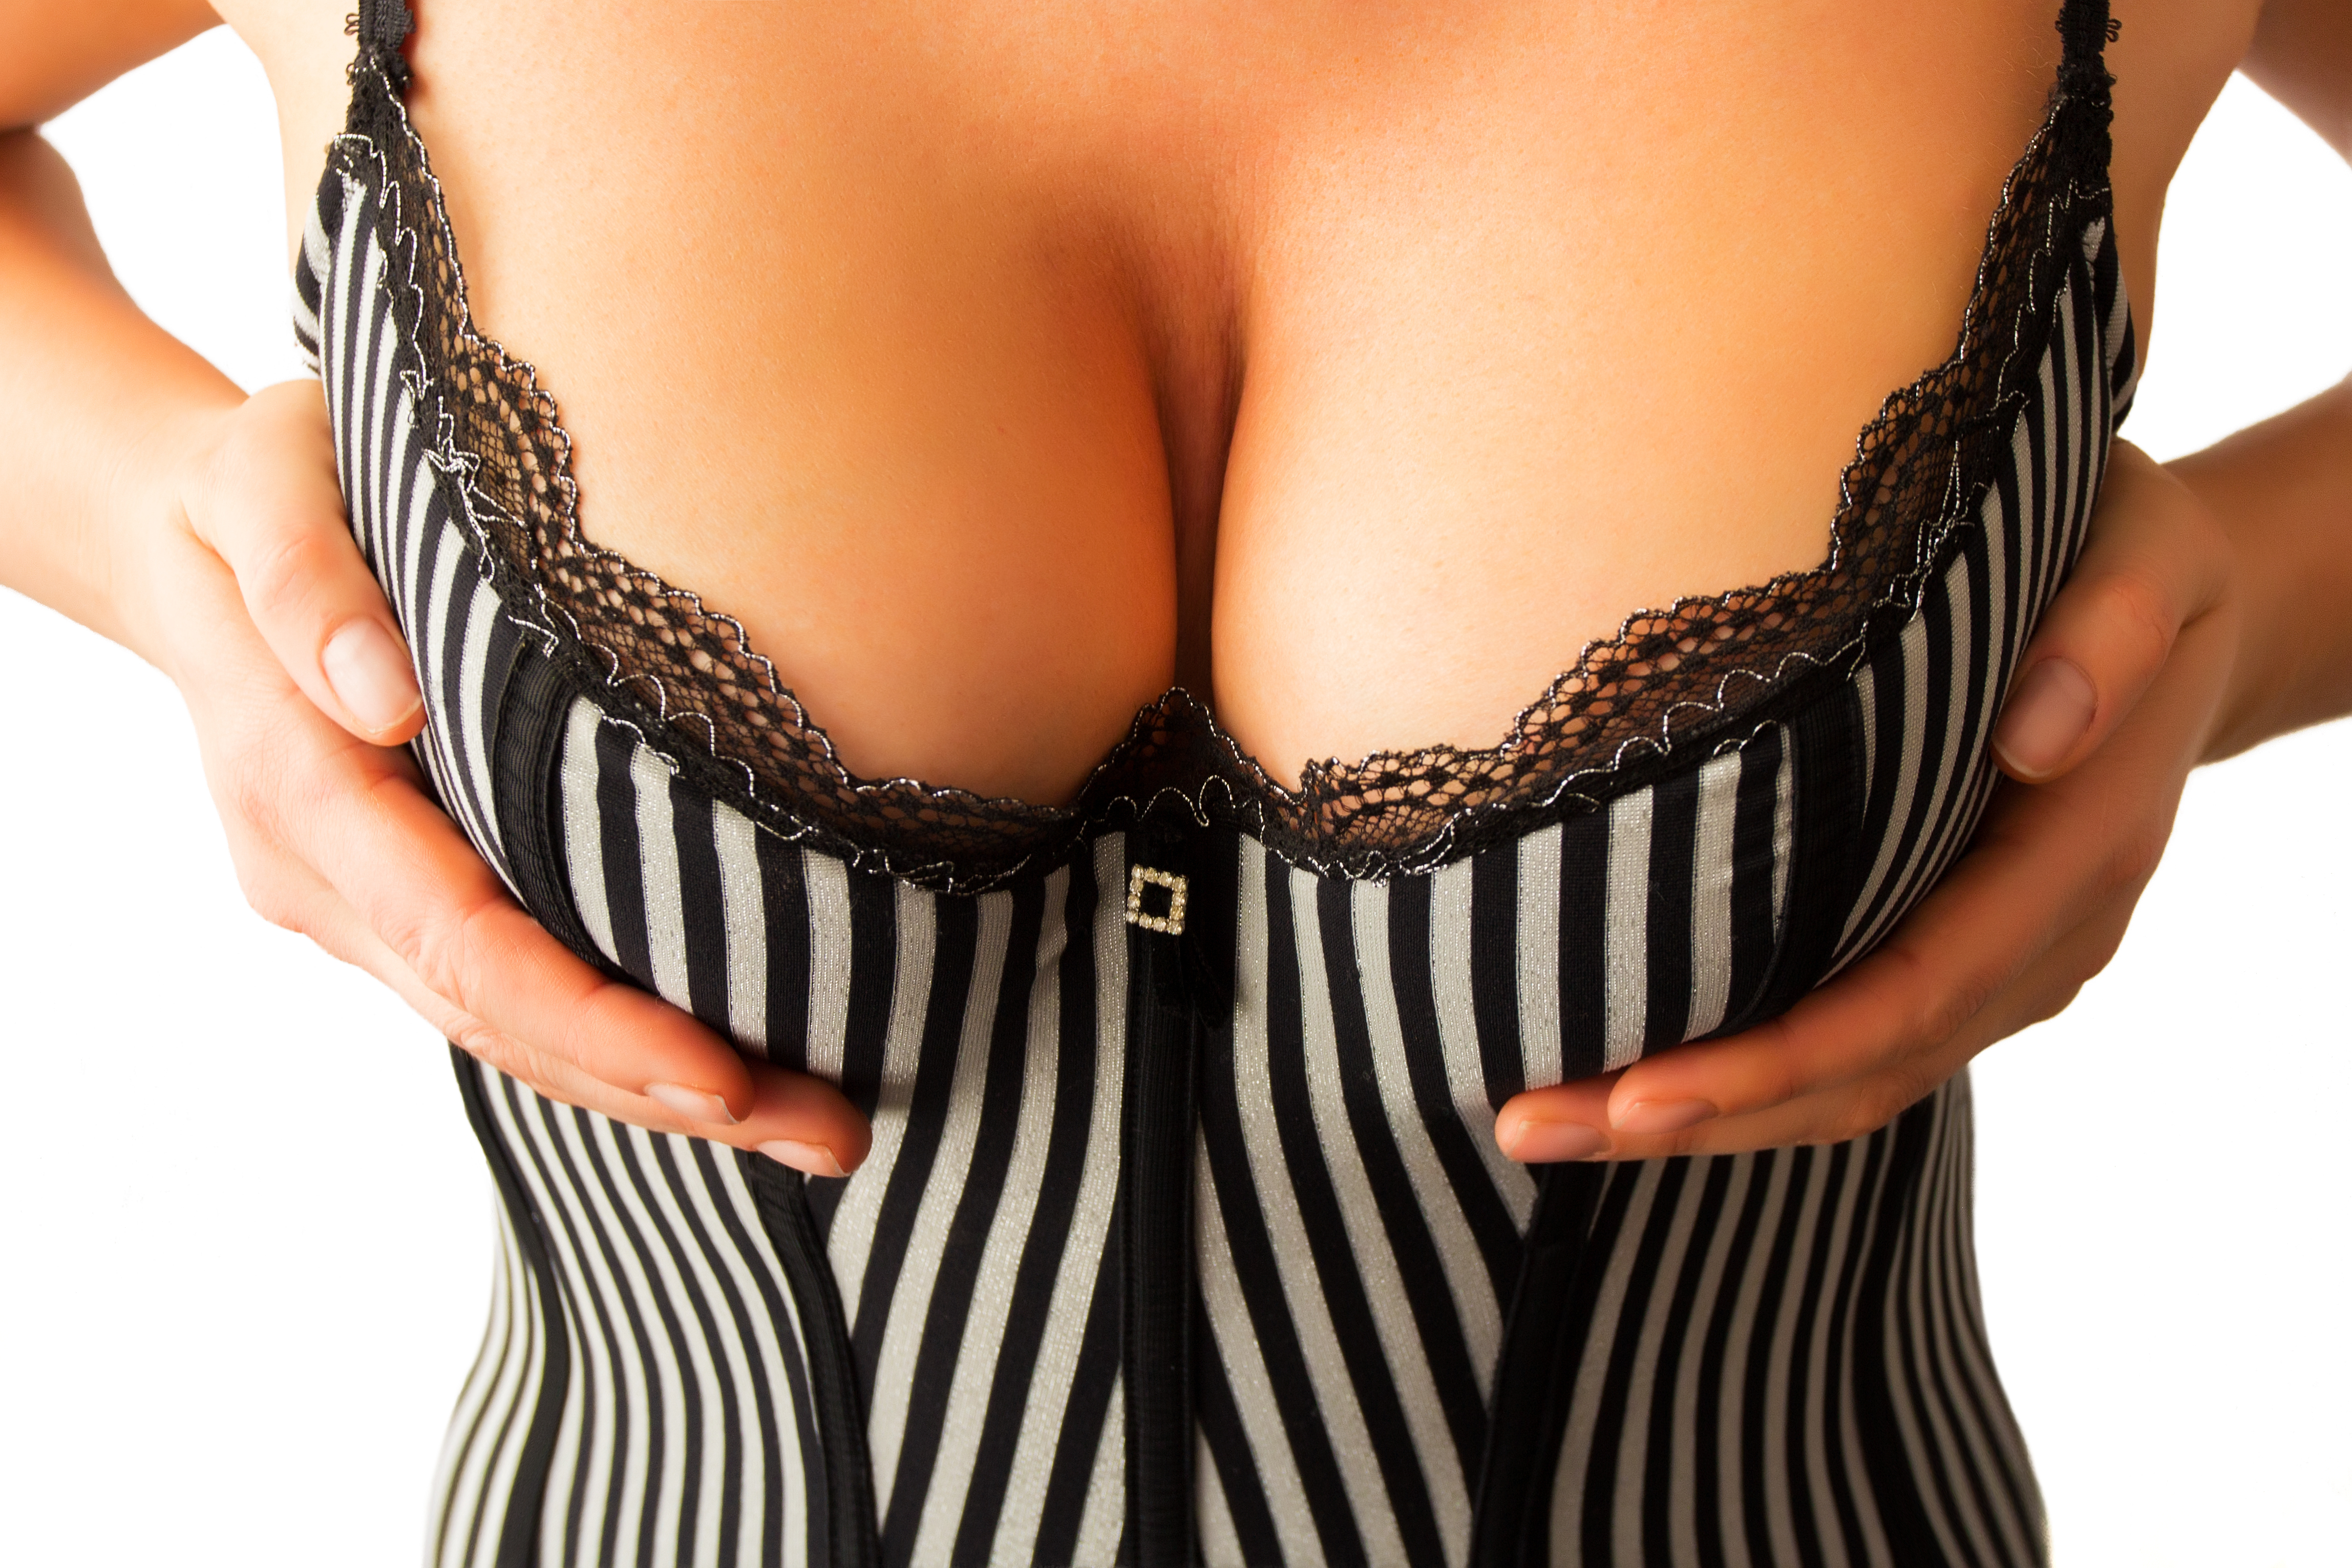 Breasts as the epicentre of the masculine mind